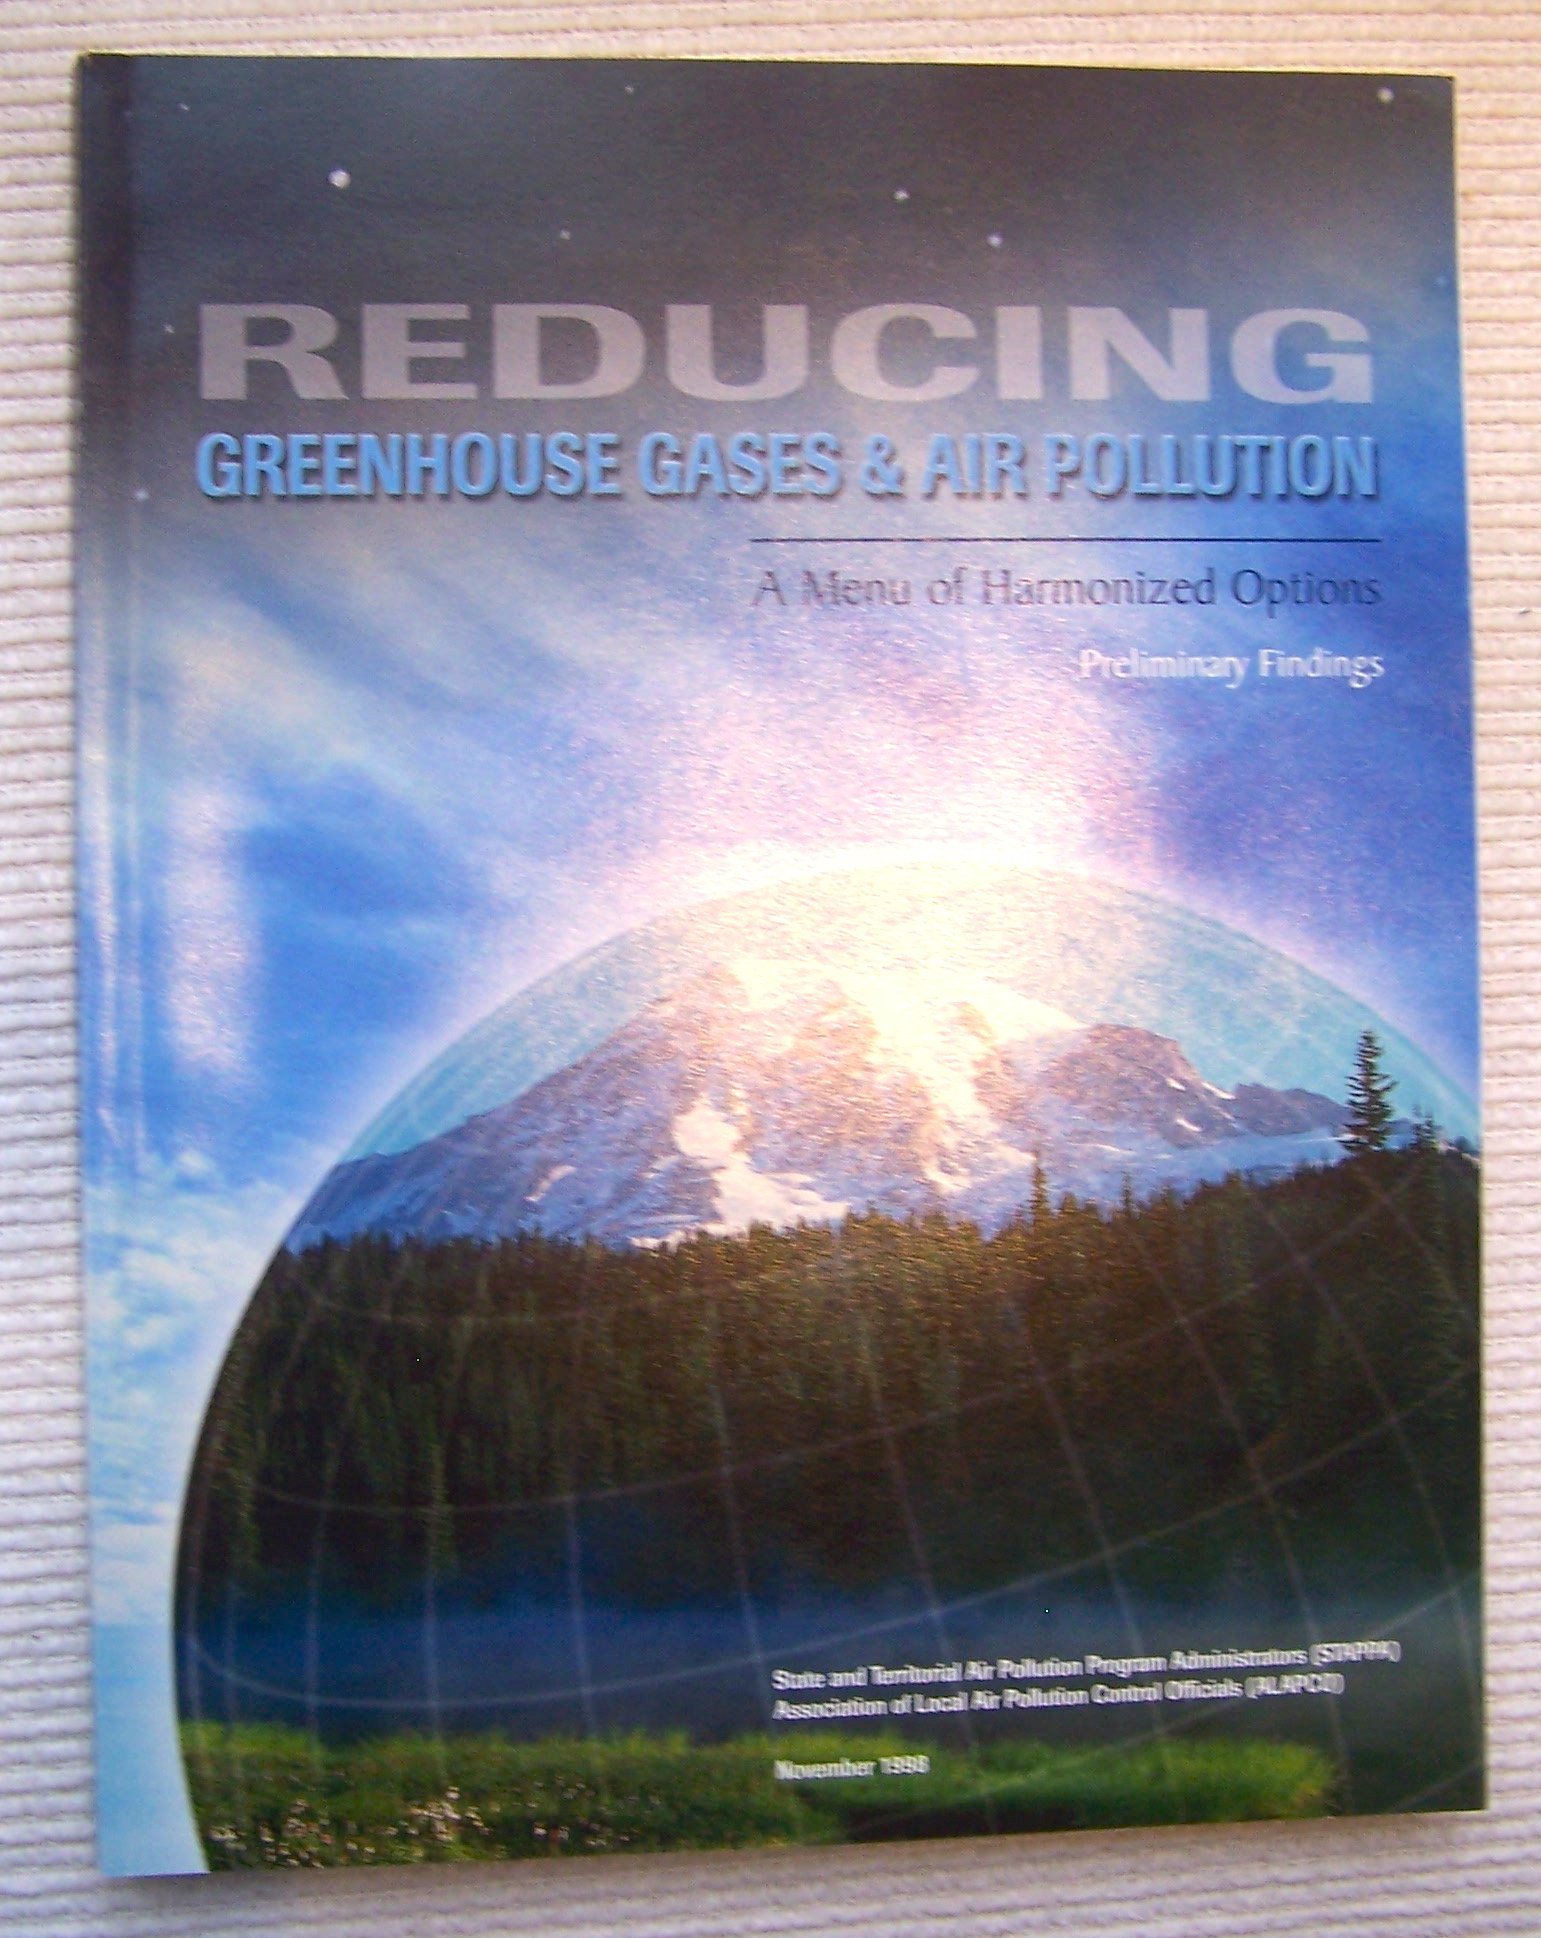 REDUCING GREENHOUSE GASES & AIR POLLUTION: A Menu of Harmonized Options